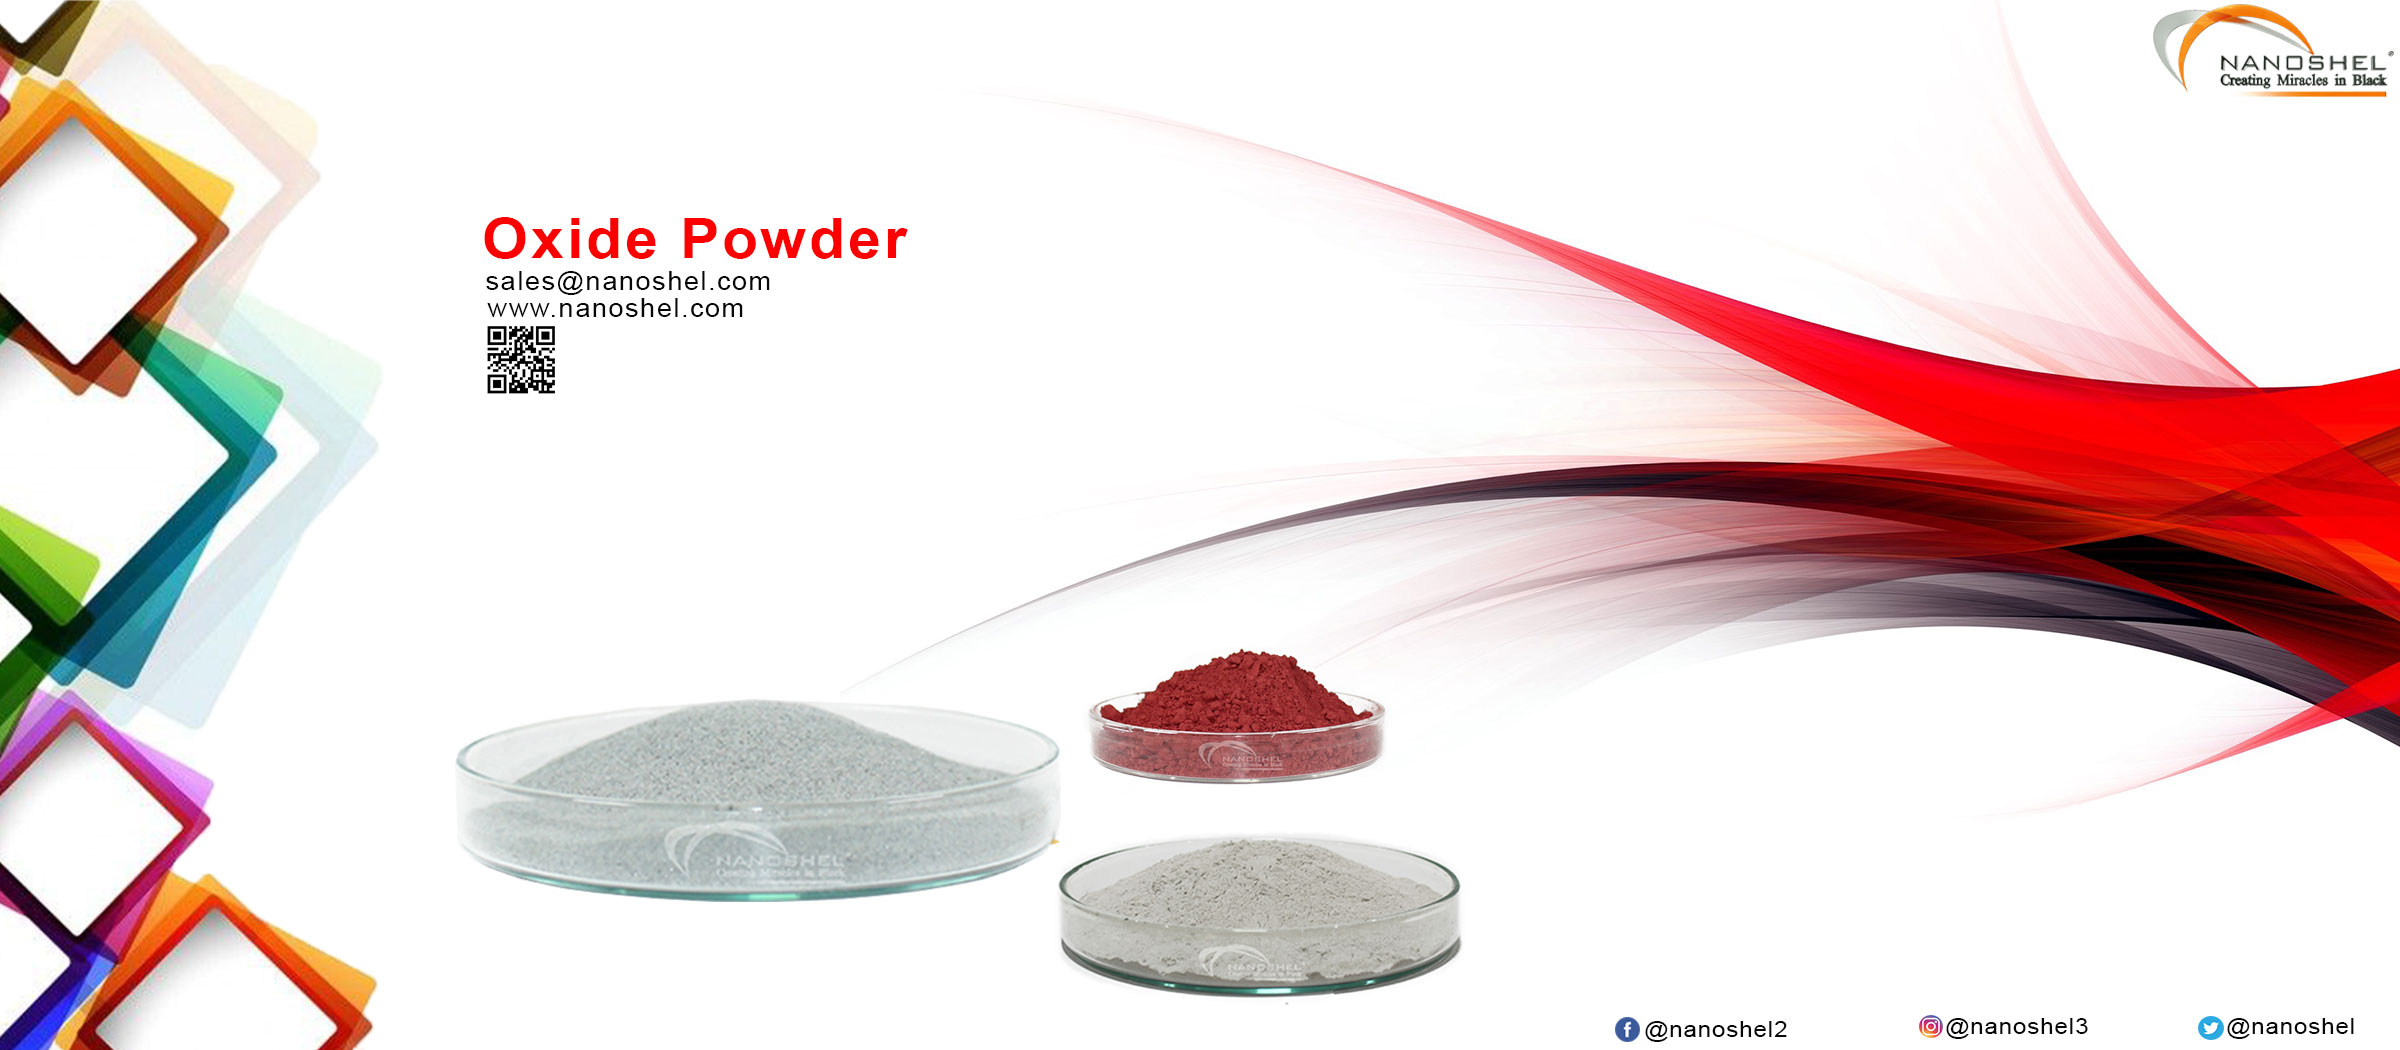 Ruthenium IV Oxide Powder